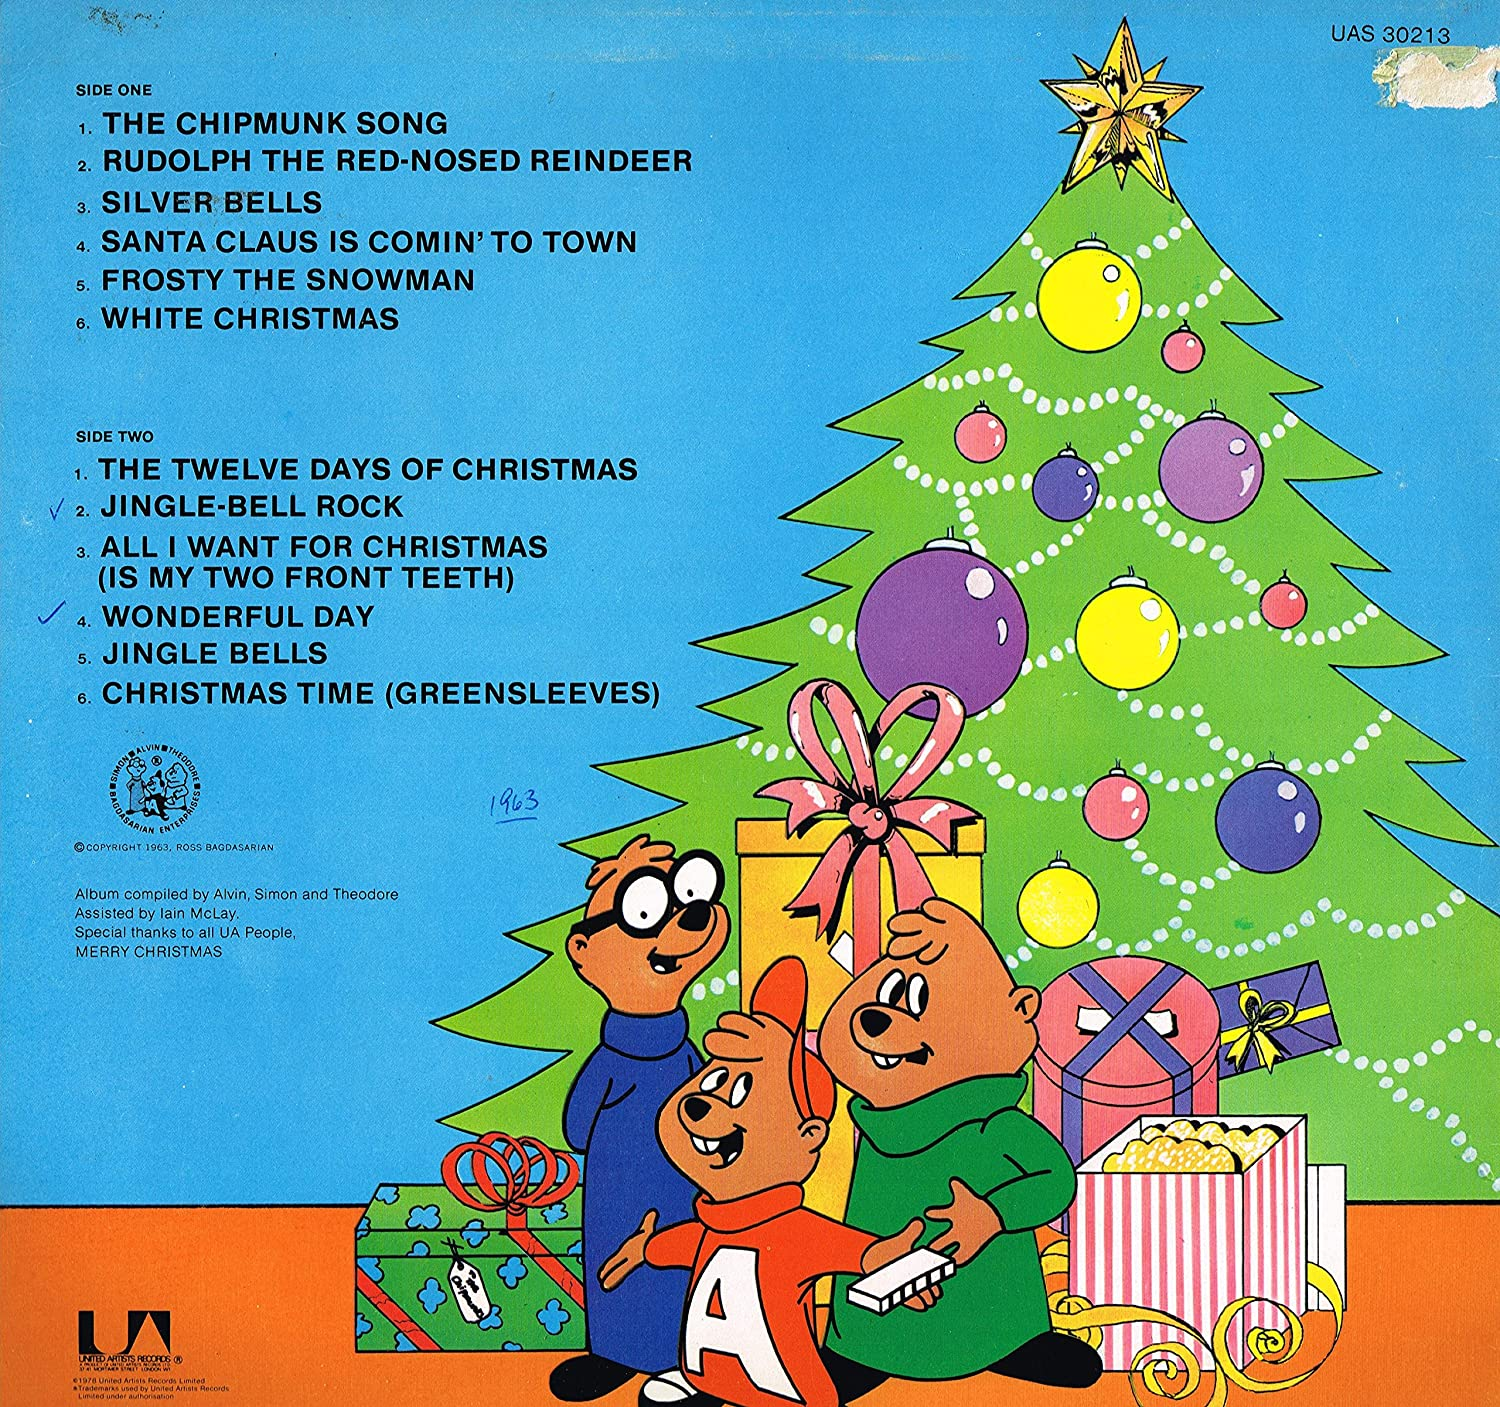 christmas with the chipmunks LP: Amazon.co.uk: Music